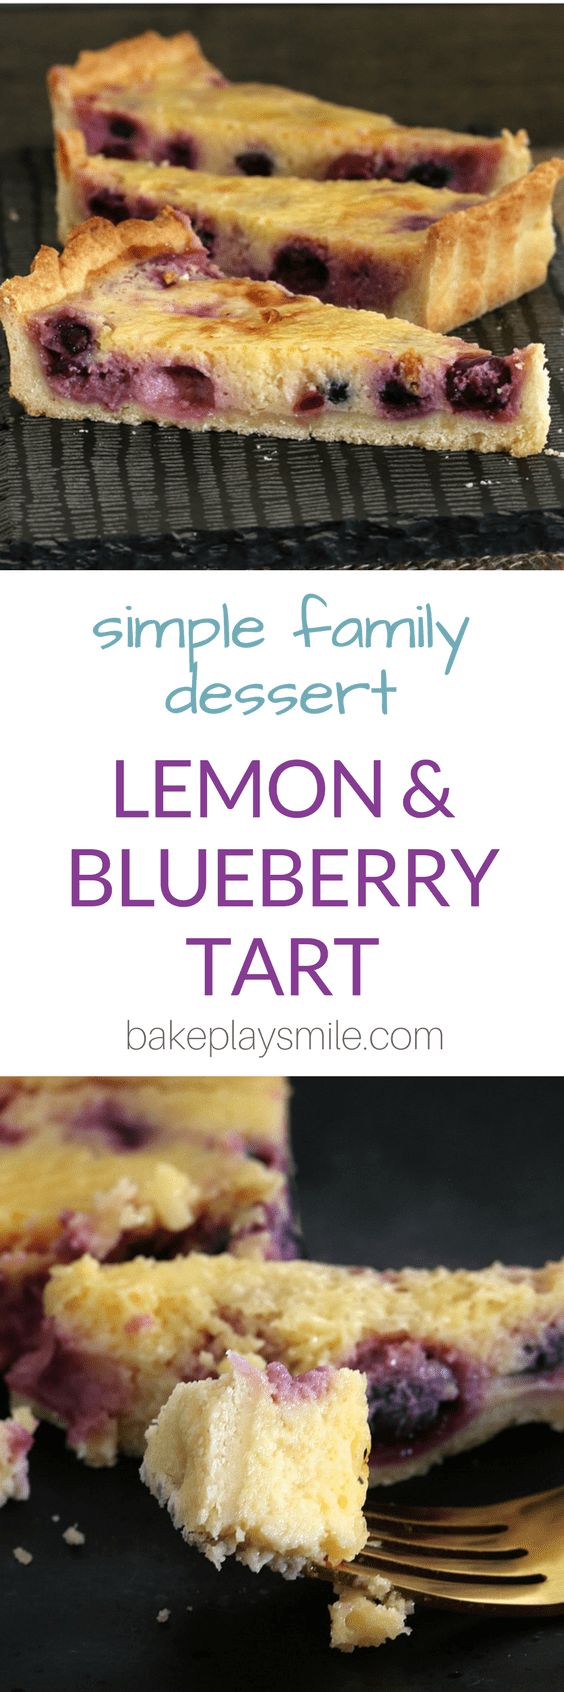 A classic Lemon Blueberry Tart! This is the most deliciously simple dessert... a total crowd-pleaser. Make your own pastry or use a store-bought version.